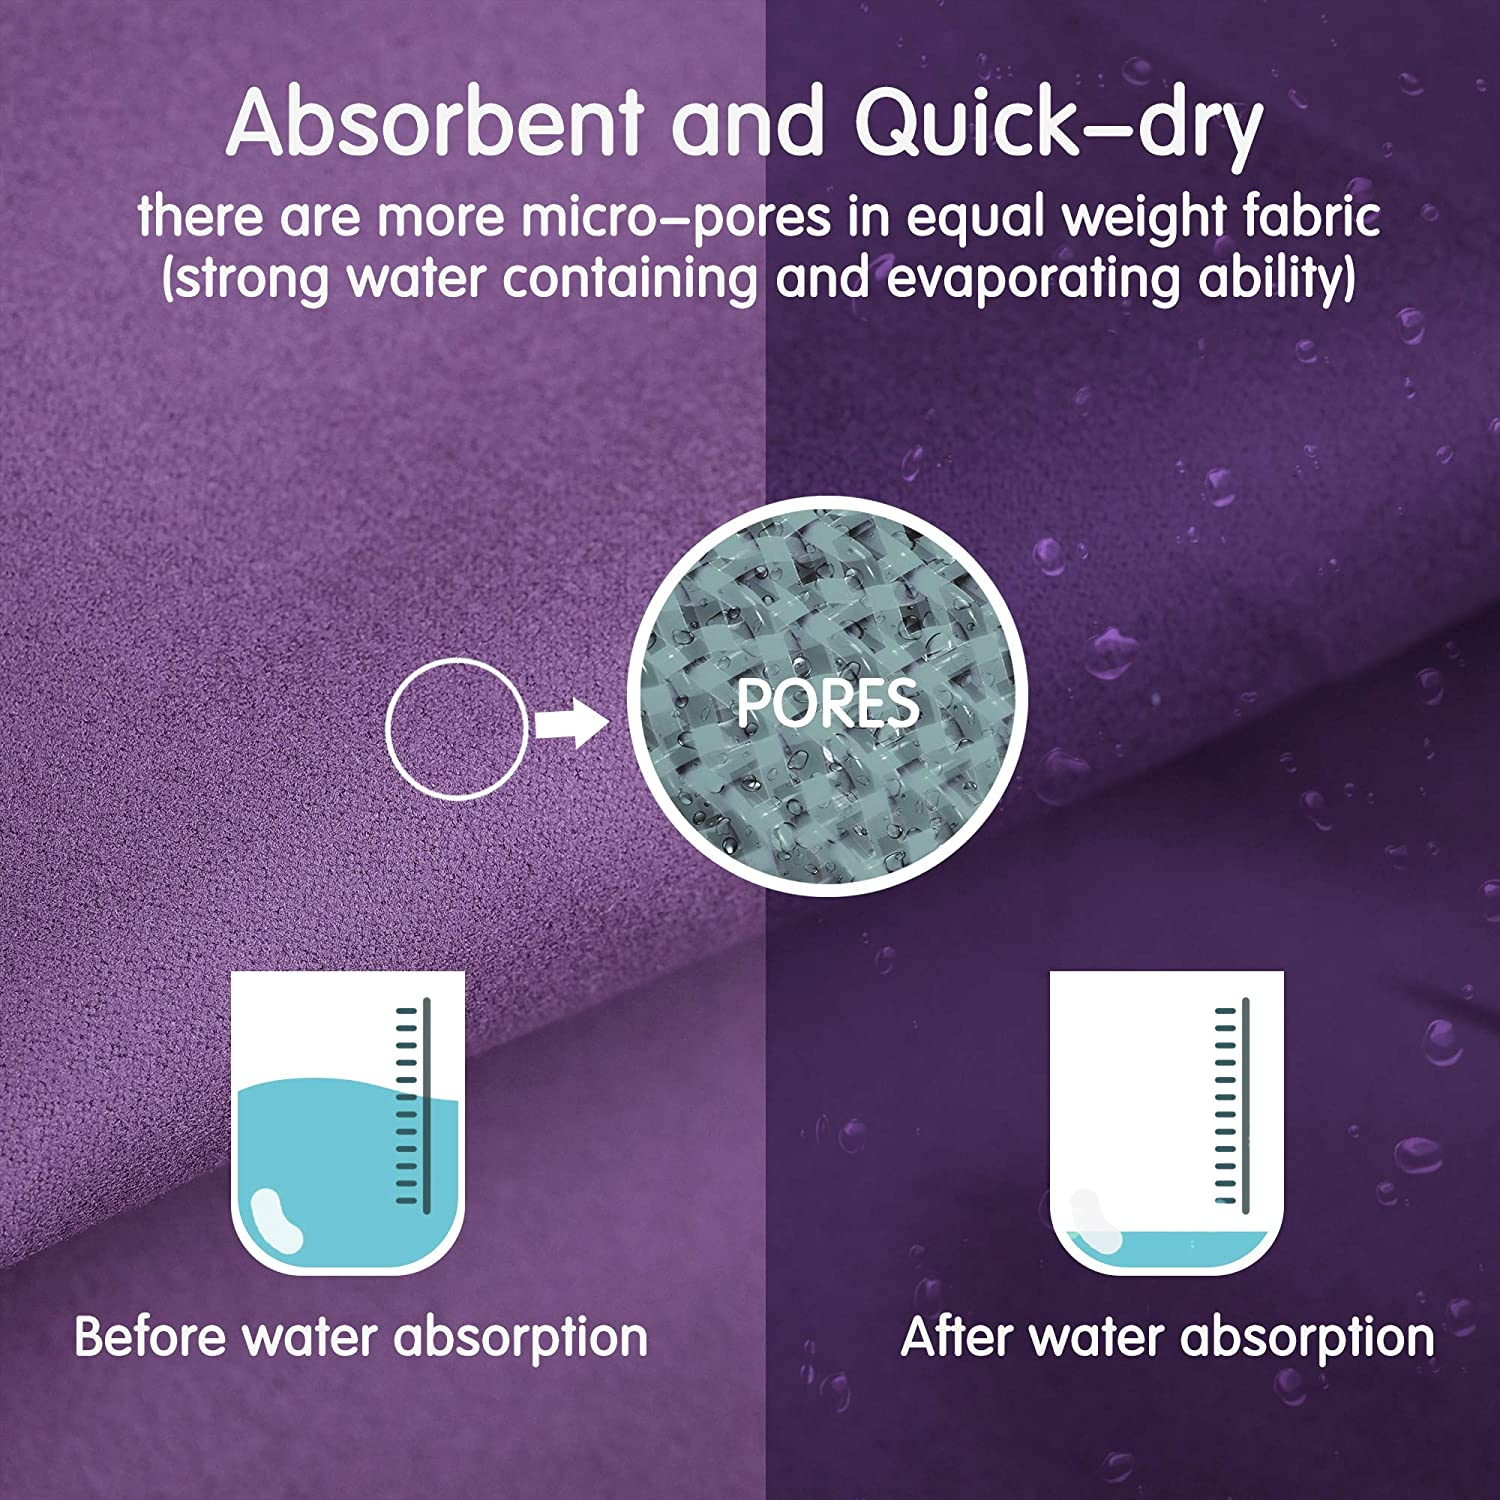 """Antibacterial Fast Drying Soft Travel Towel Edow Brushed Microfiber Towel, Super Absorbent Lightweight and Compact for Gym Beach Camping Swimming and Sports. 30/""""x60/"""""""